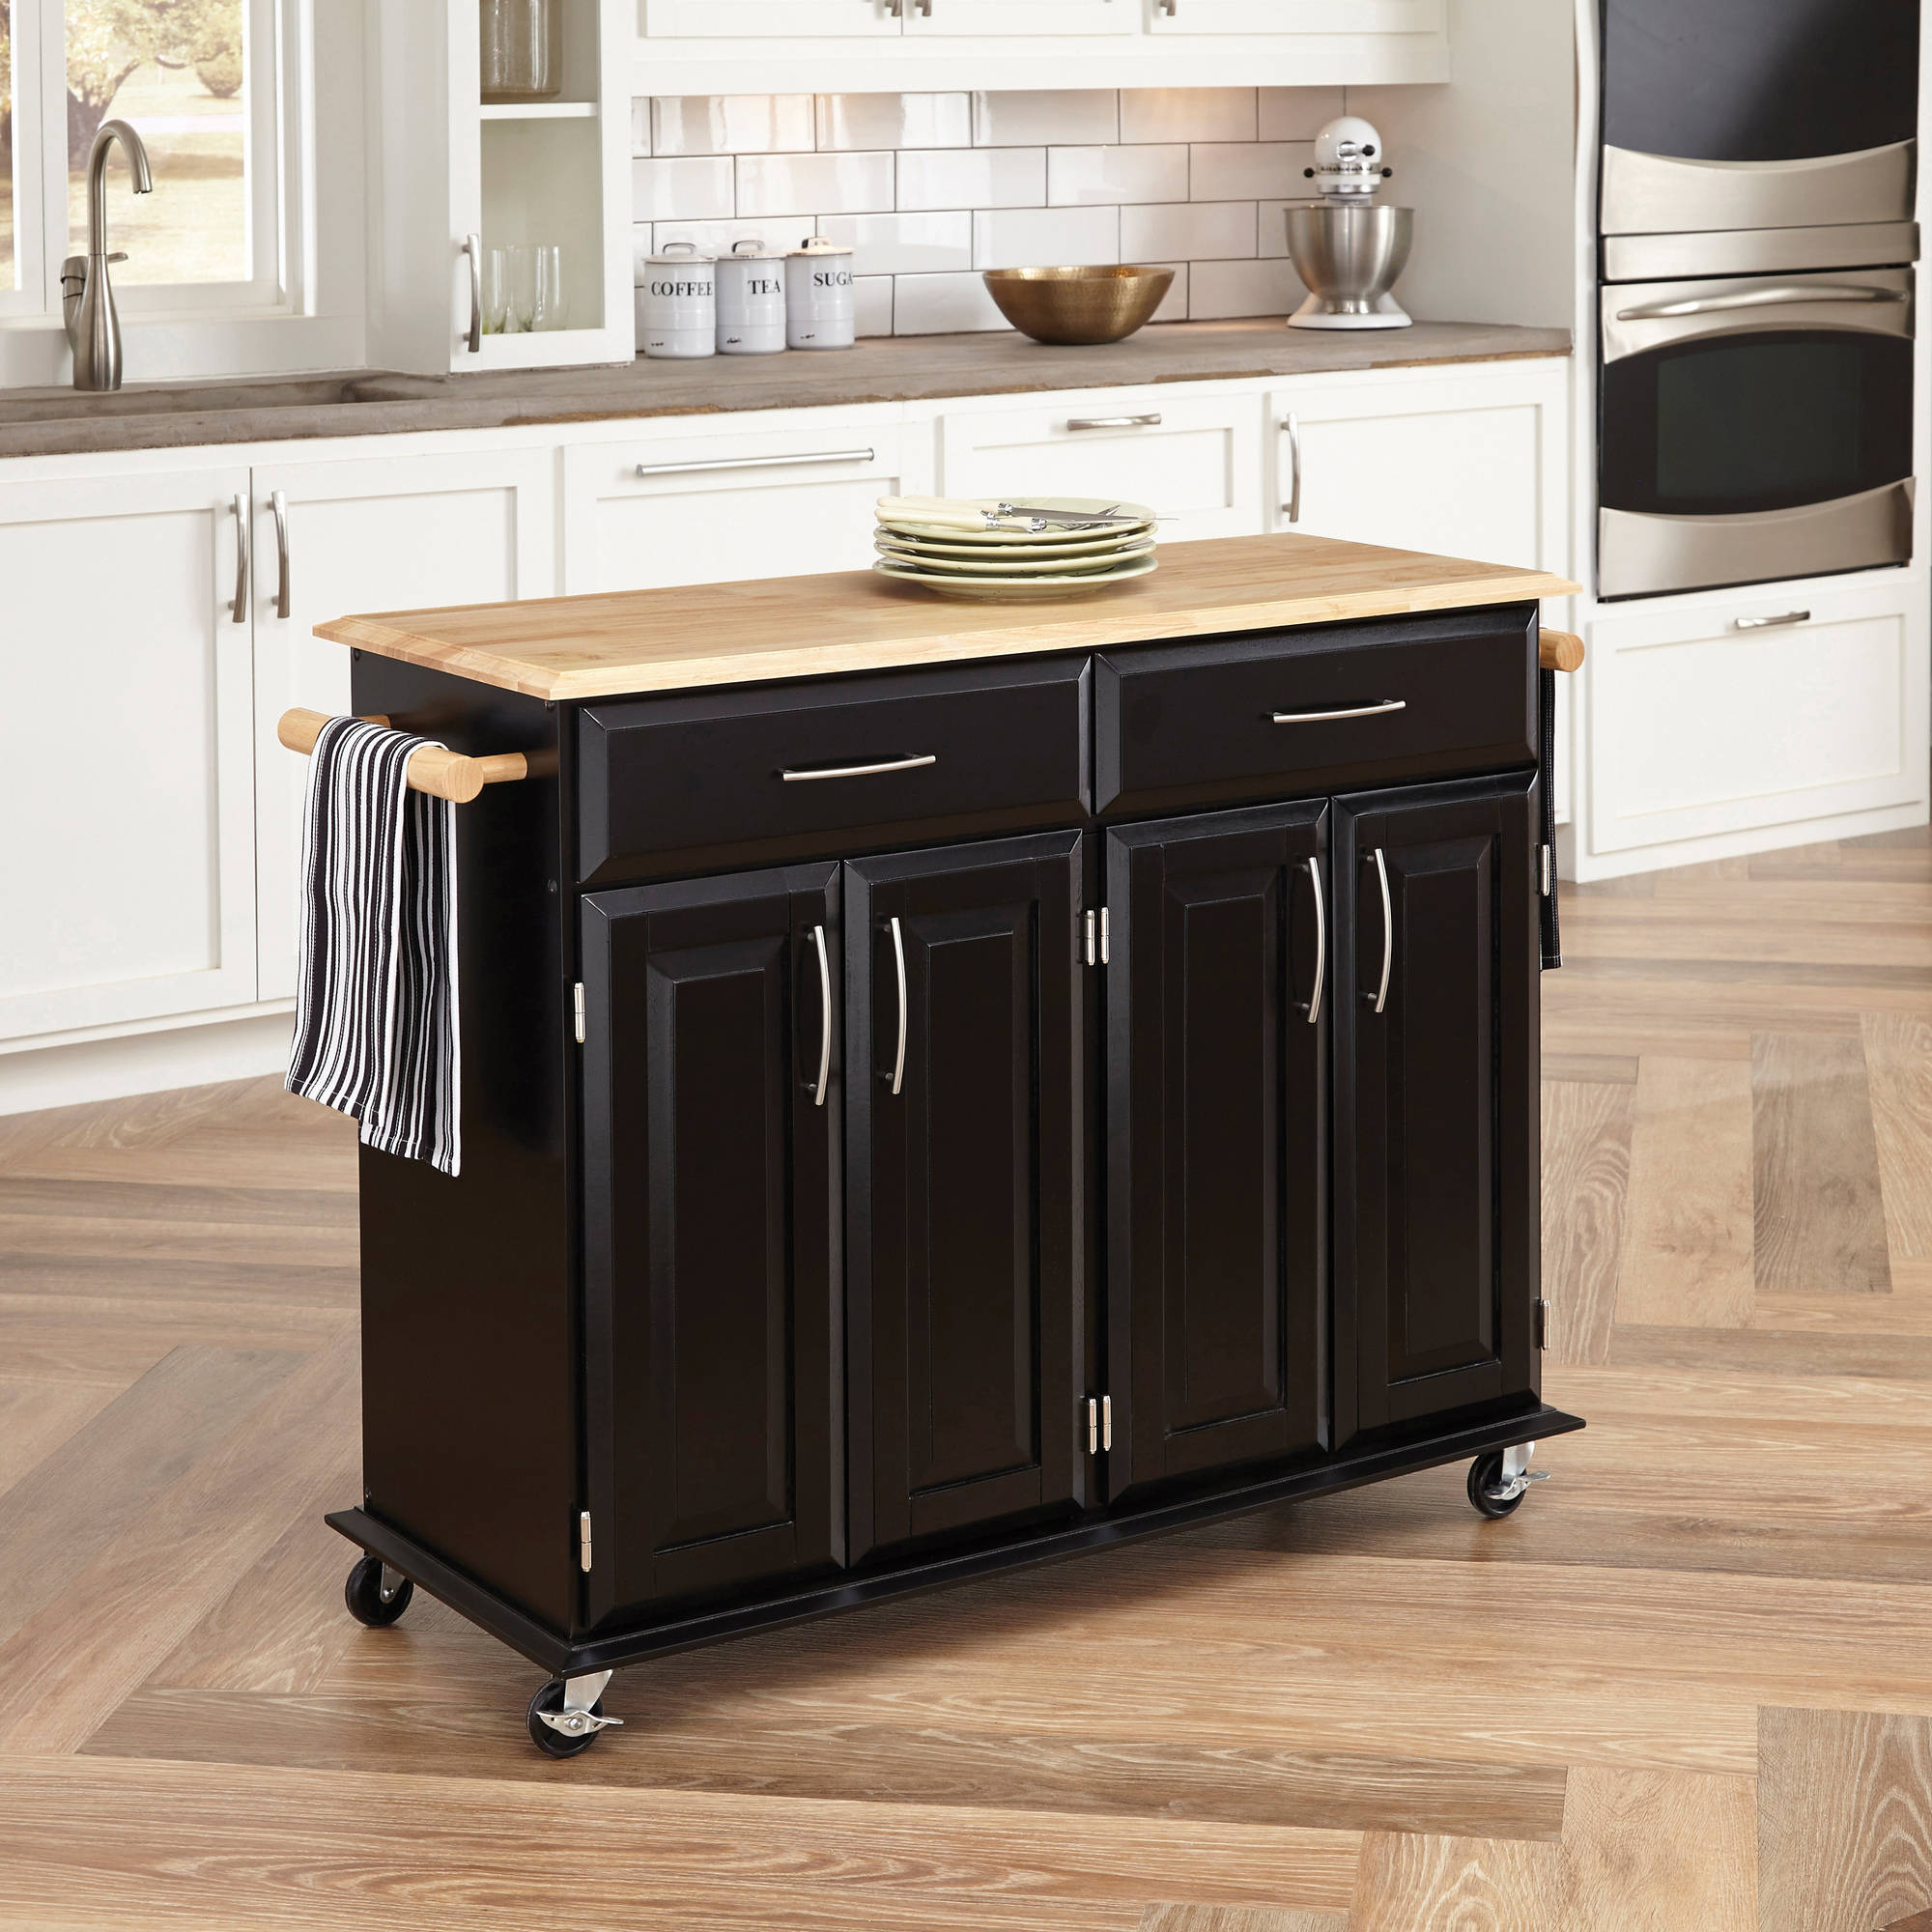 Home Styles Dolly Madison Black Island Cart Walmartcom - Kitchen islands at walmart